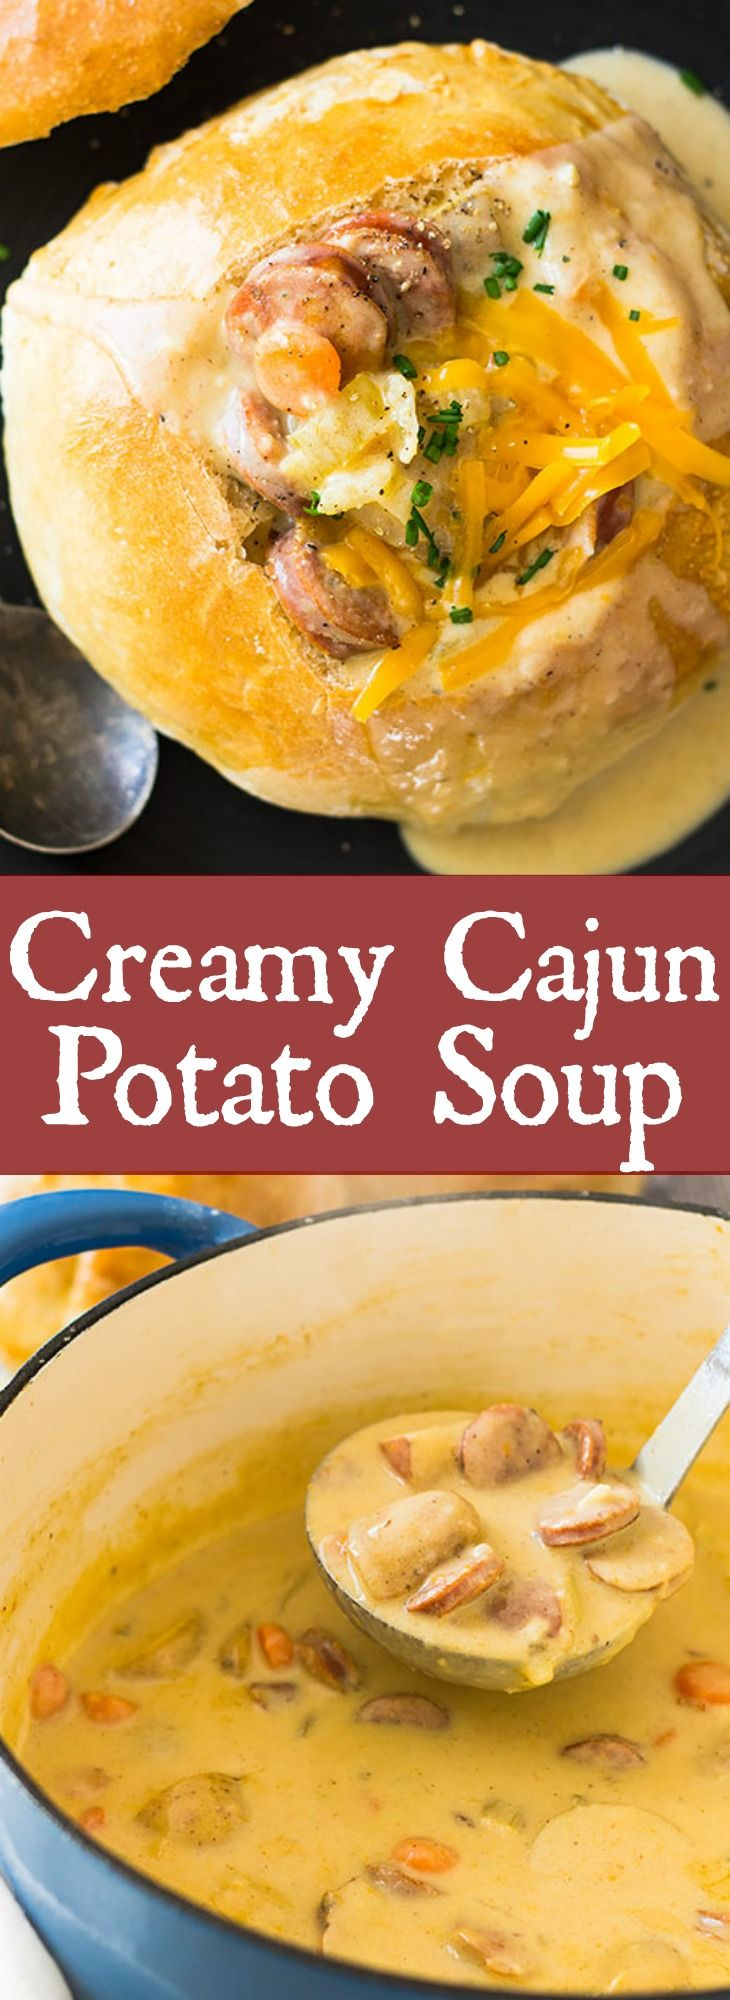 This Creamy Cajun Potato Soup is comfort food kicked up a notch. It's full of flavor, slightly spicy, rich and hearty!   www.countrysidecravings.com